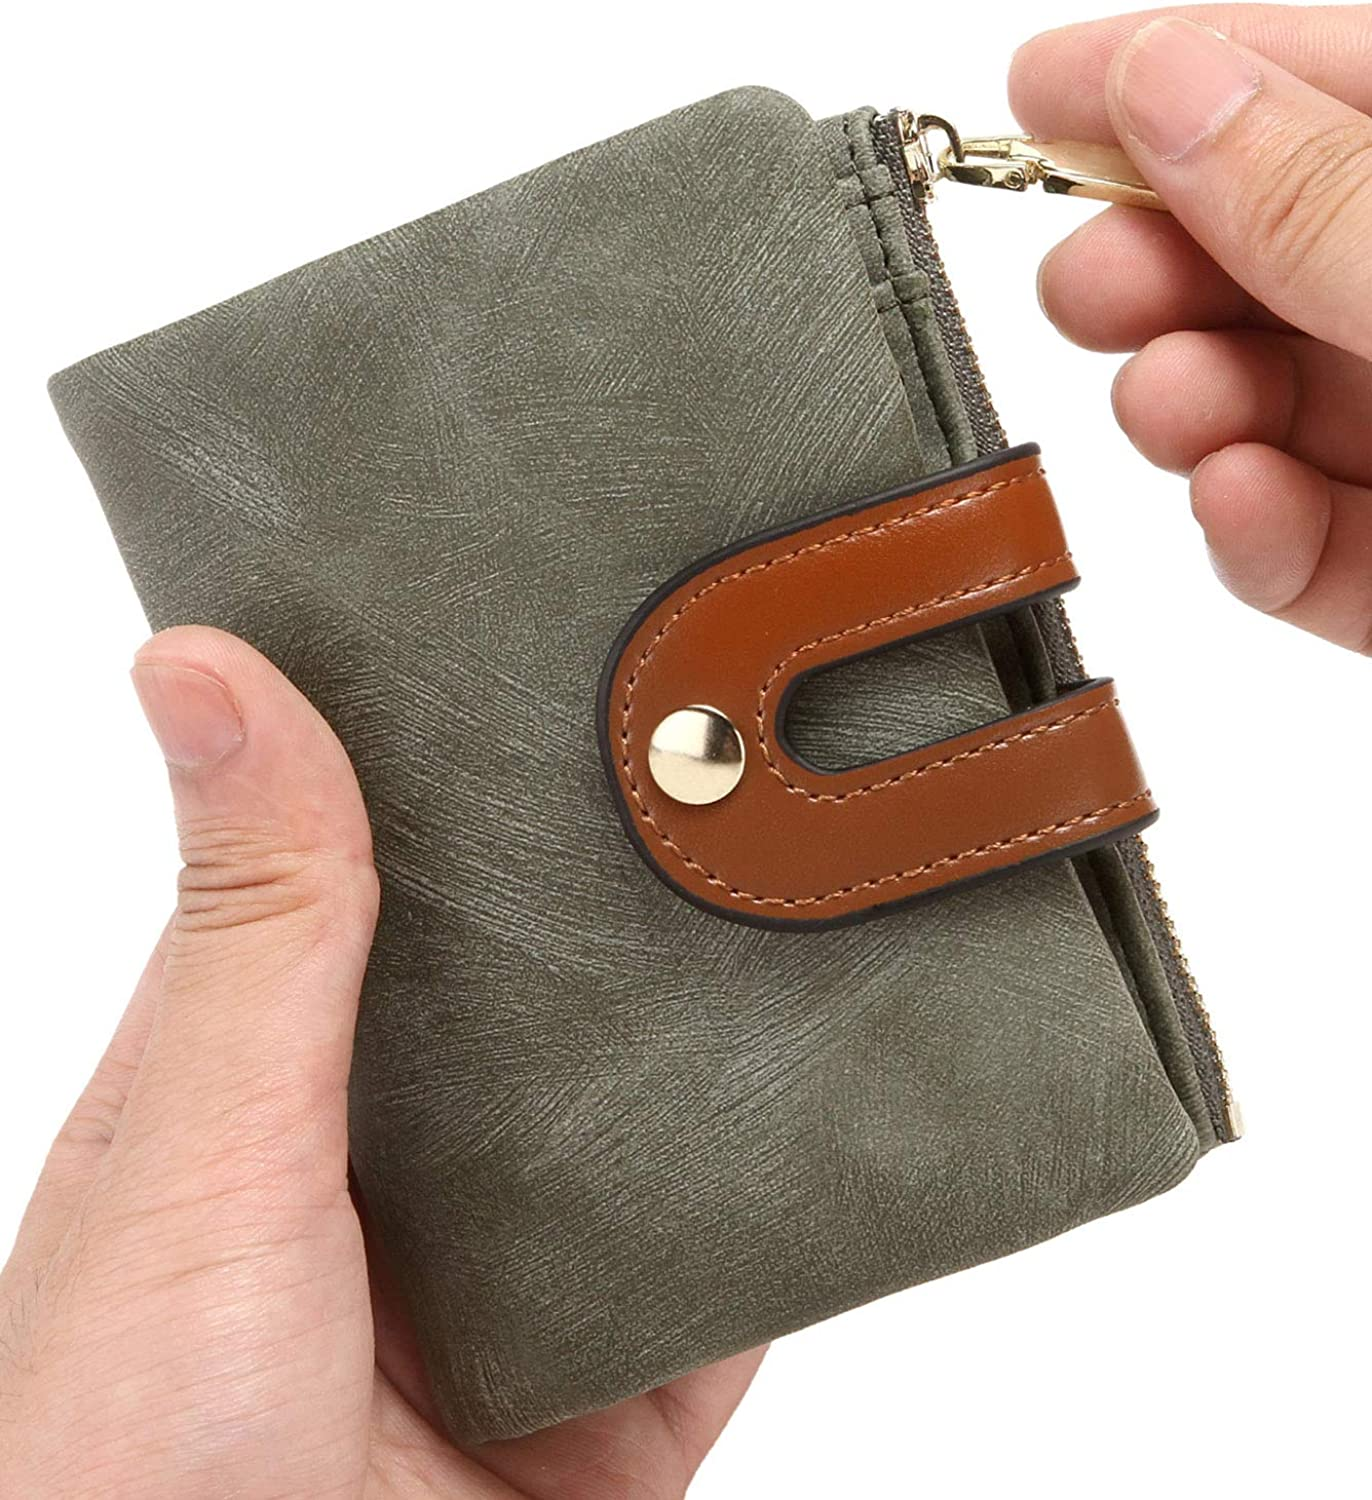 Womens Wallets Small Rfid Ladies Bifold Wallet With Zipper Coin Pocket,Mini Purse Soft Compact Thin